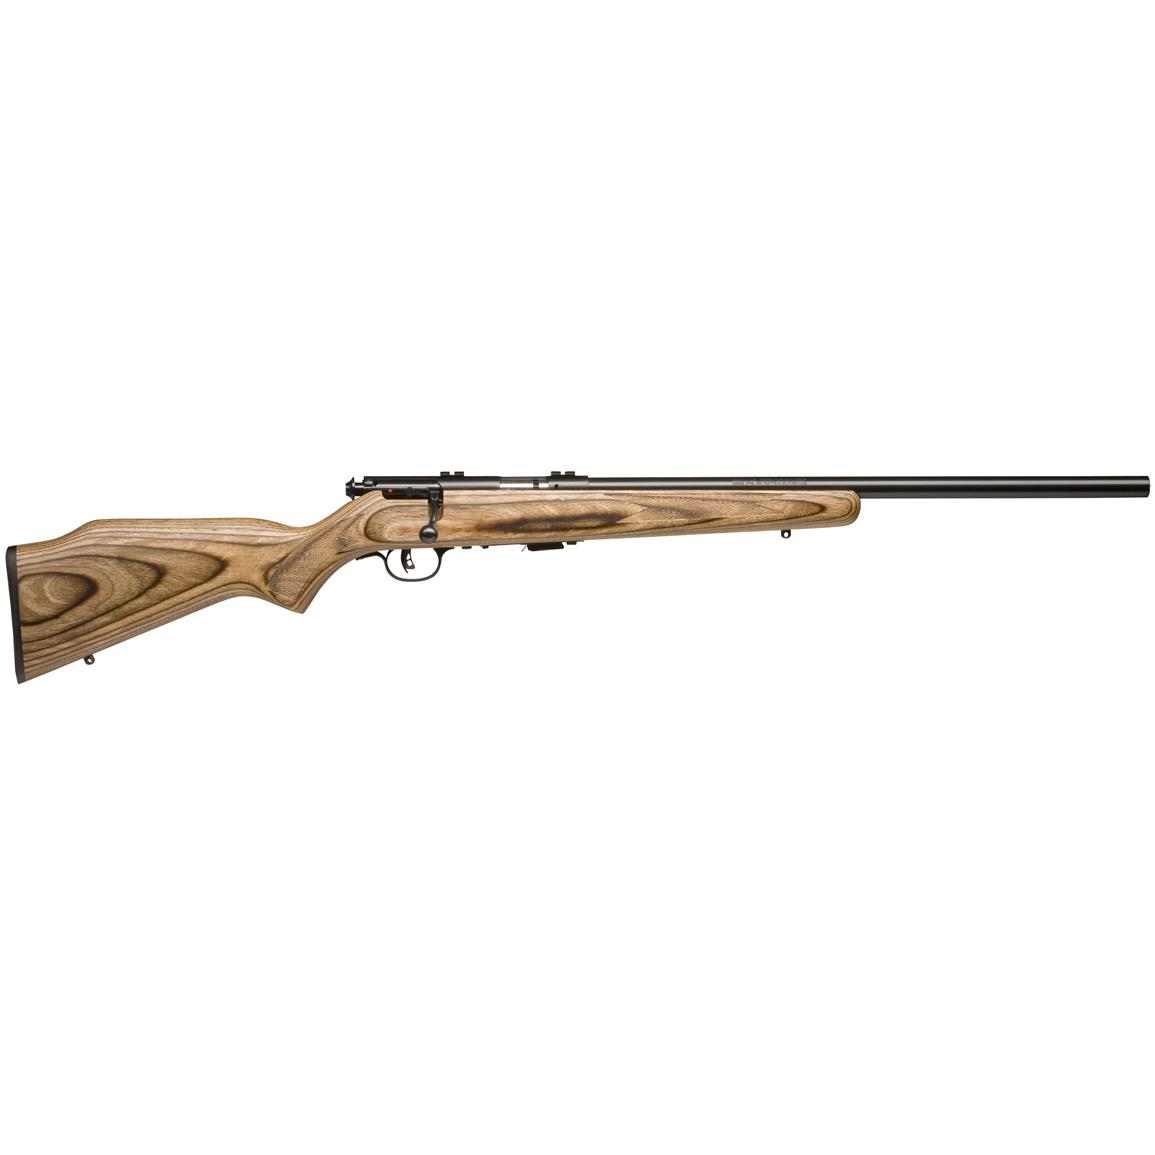 Savage 93R17 BV, Bolt Action, .17 HMR, Rimfire, 96734, 062654967344, 21 inch Barrel